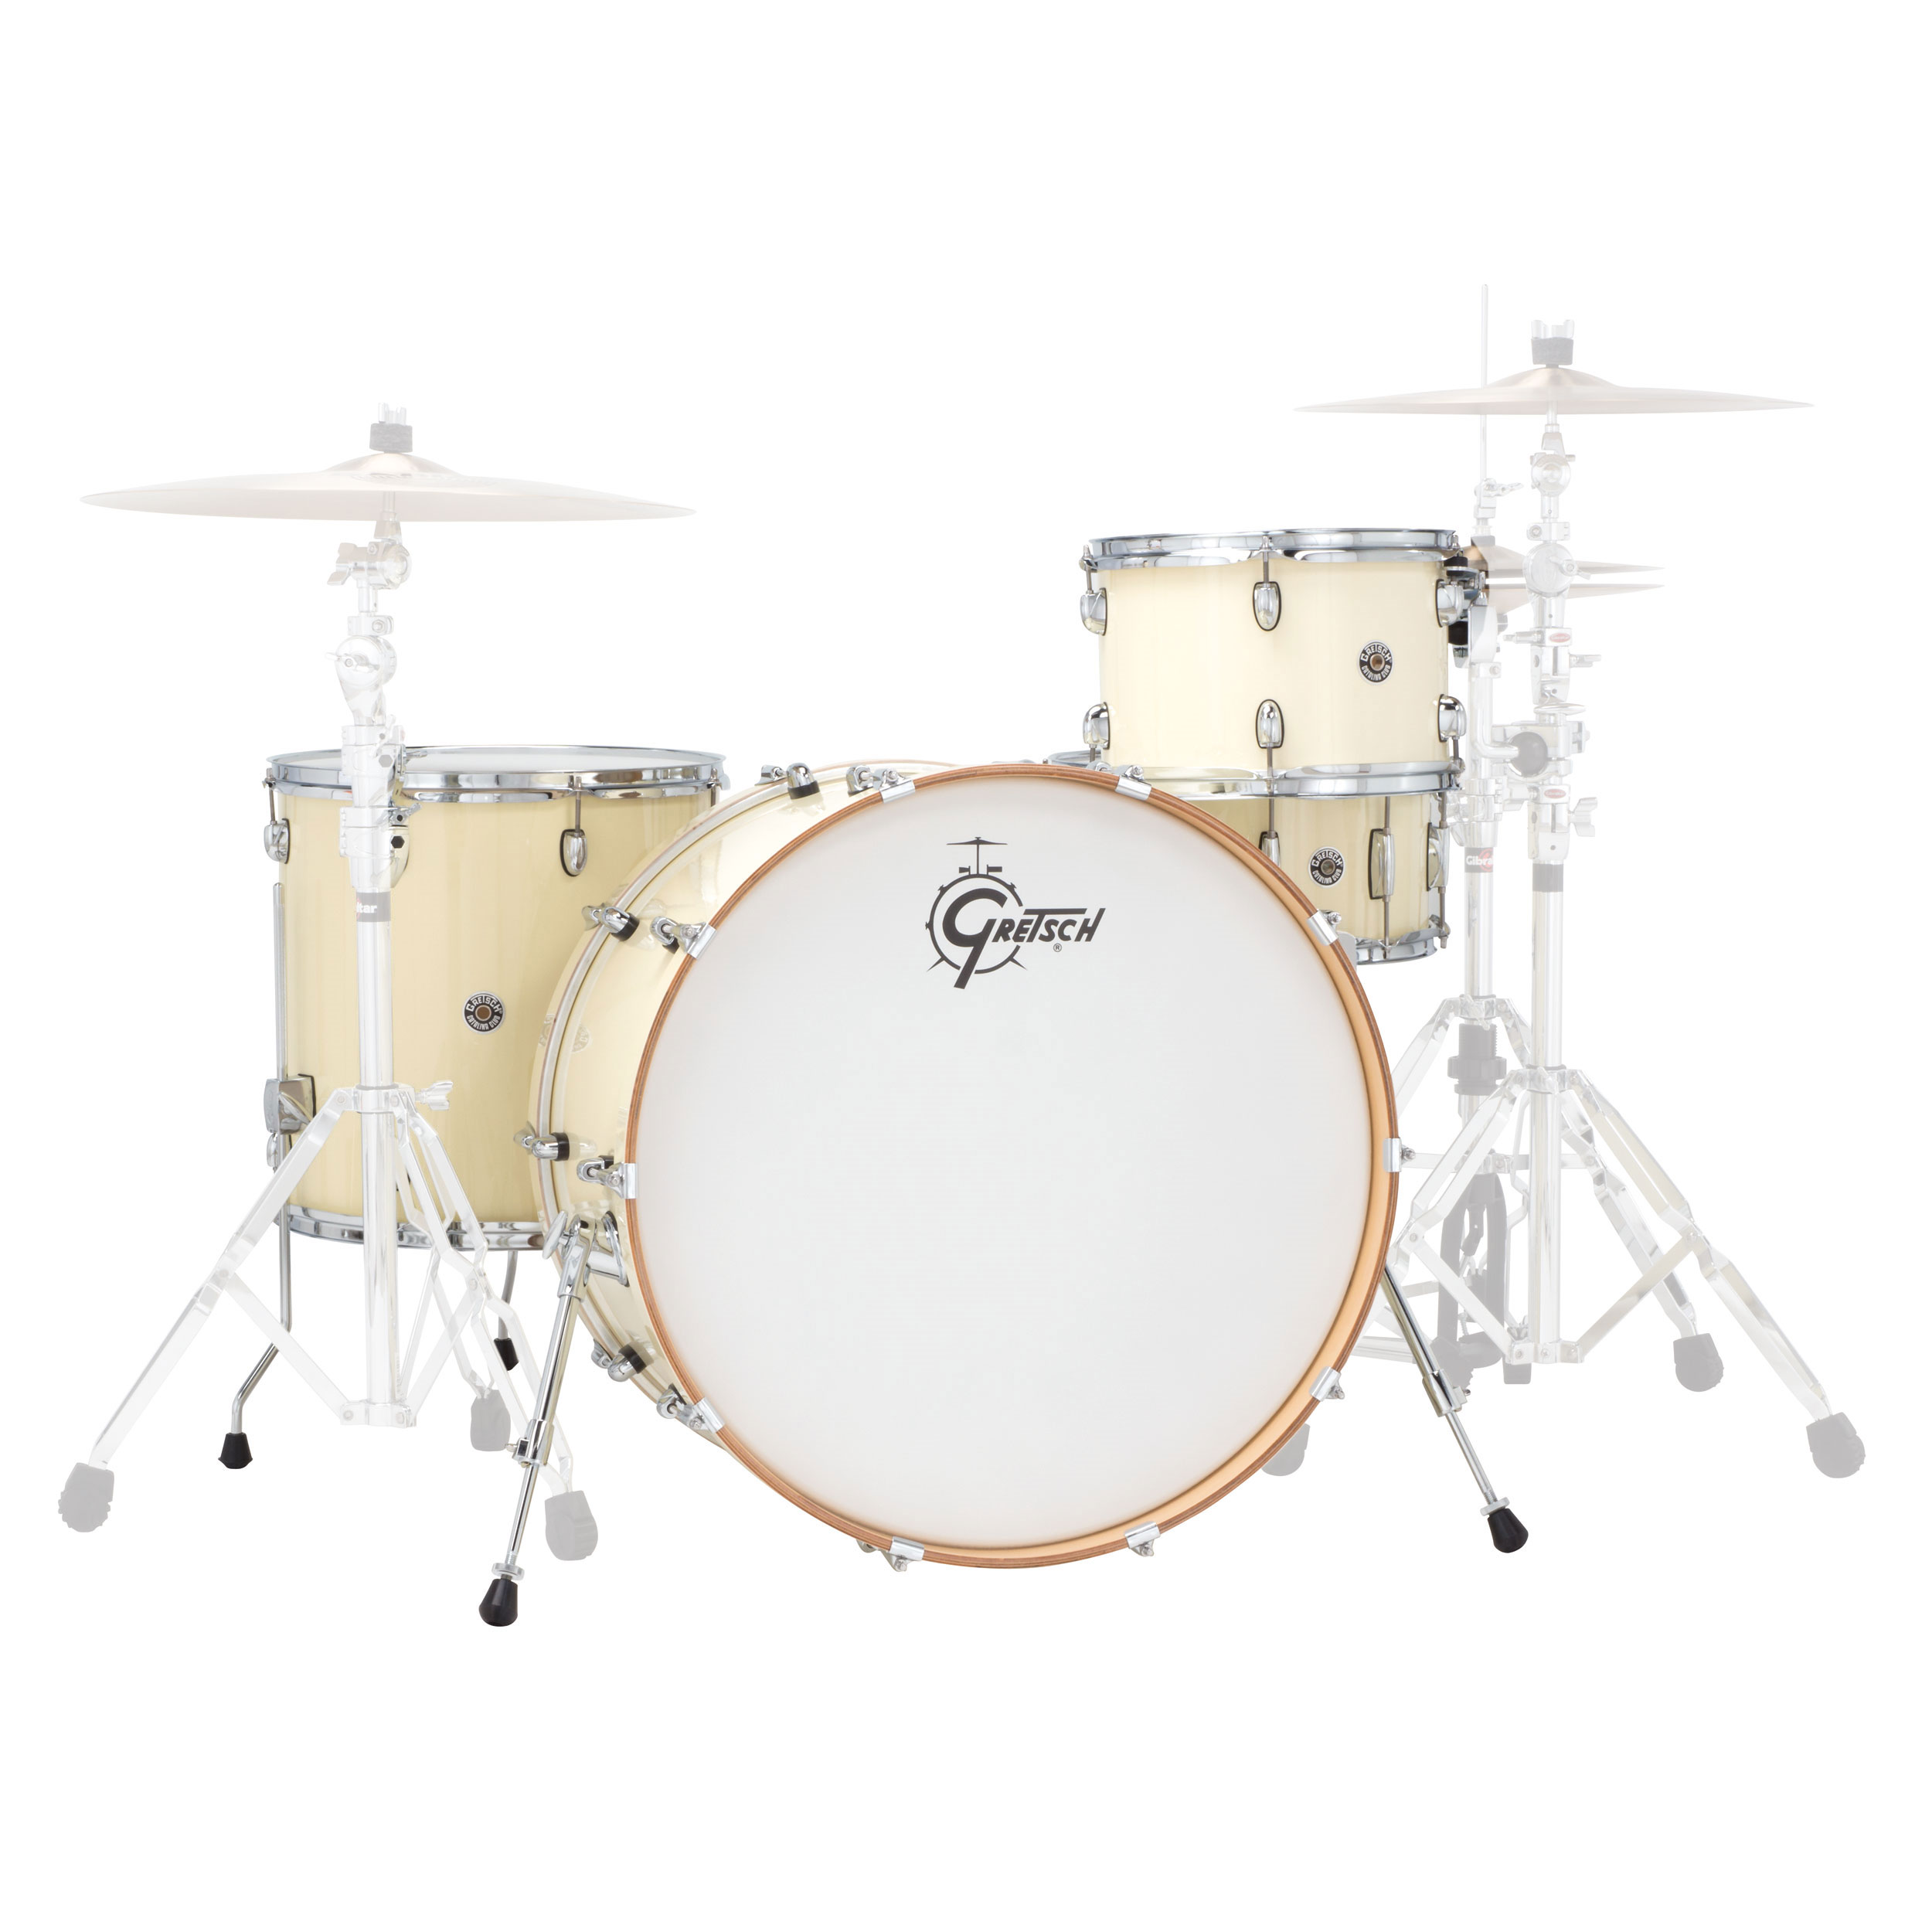 "Gretsch Catalina Club Rock 4-Piece Drum Set Shell Pack (24"" Bass, 12/16"" Toms, 14"" Snare) with Satin Finish"